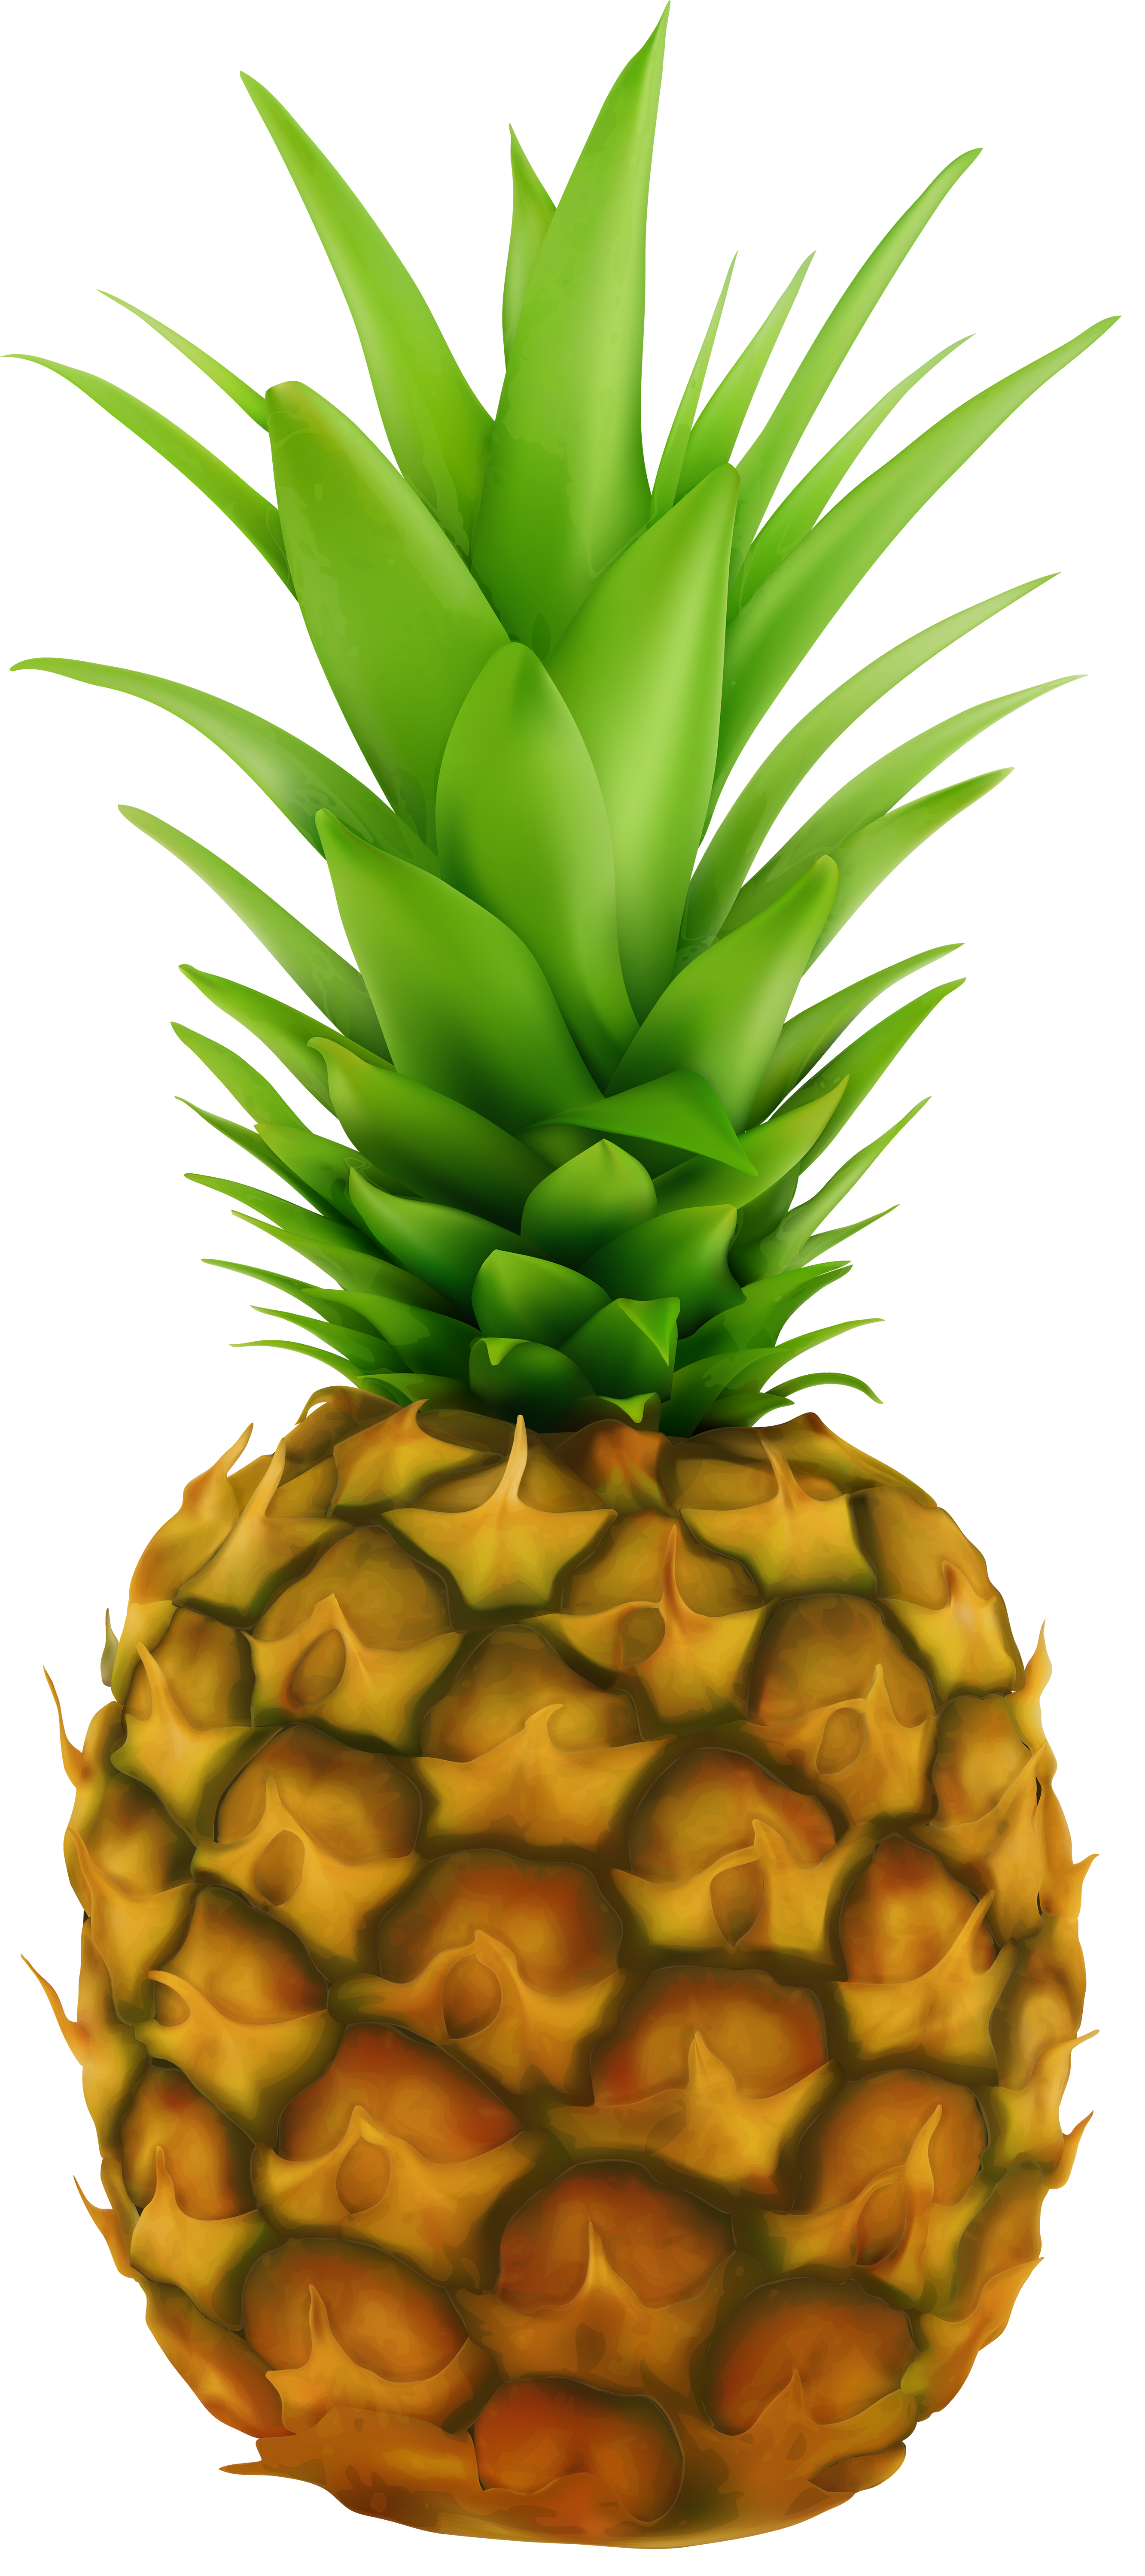 Pineapple clipart glitter. Transparent clip art image